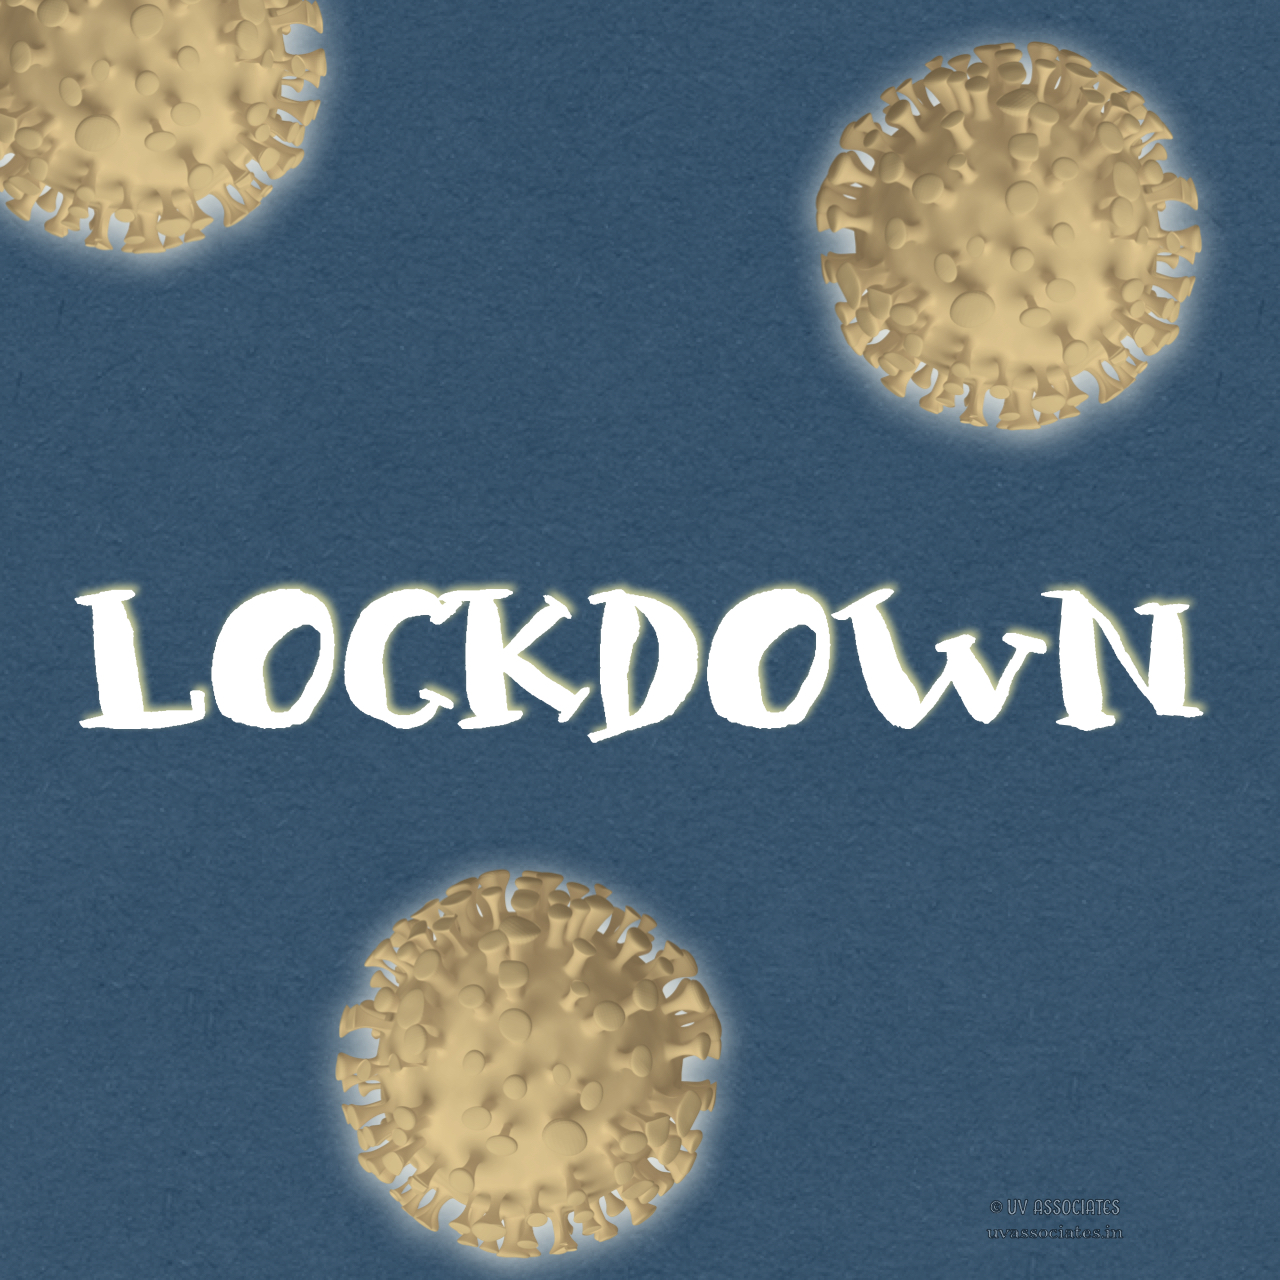 Pale Coronavirus Cells framing Lockdown Text